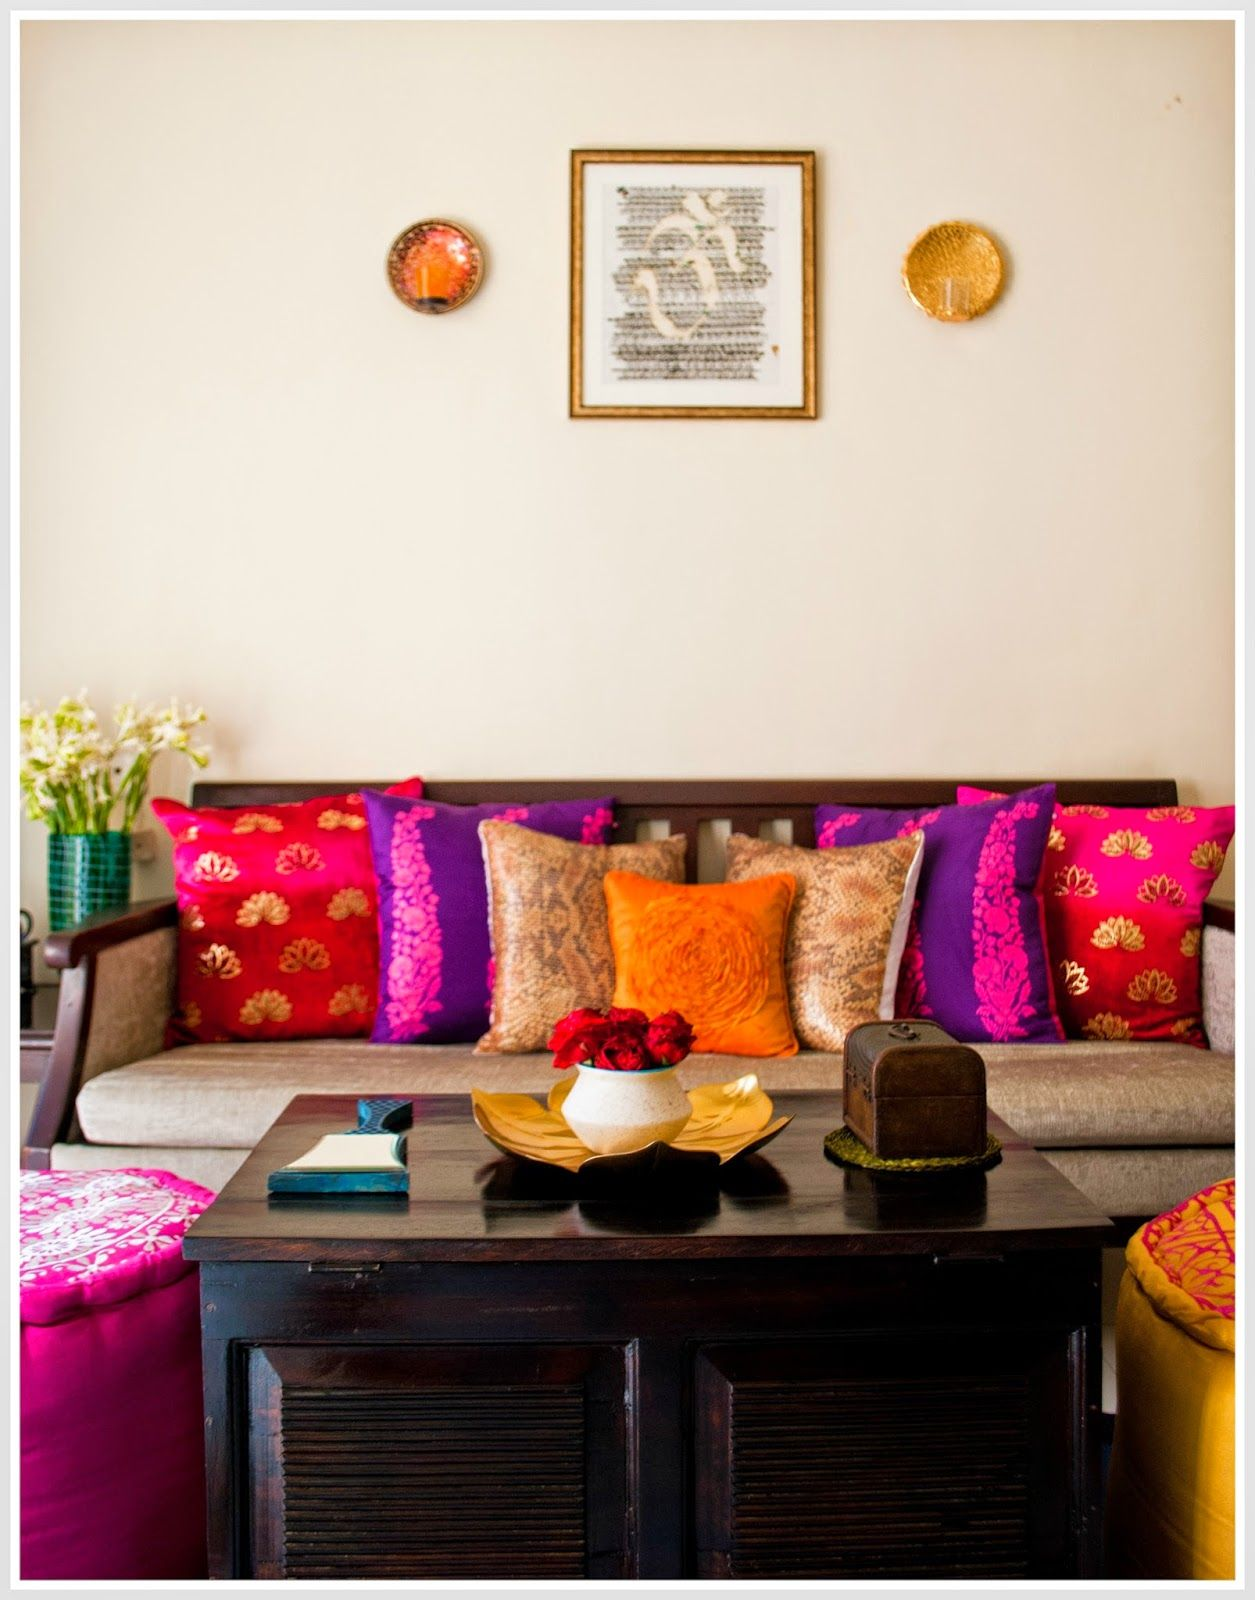 The east coast desi the aaraa by avantika studio tour - How to decorate living room in indian style ...